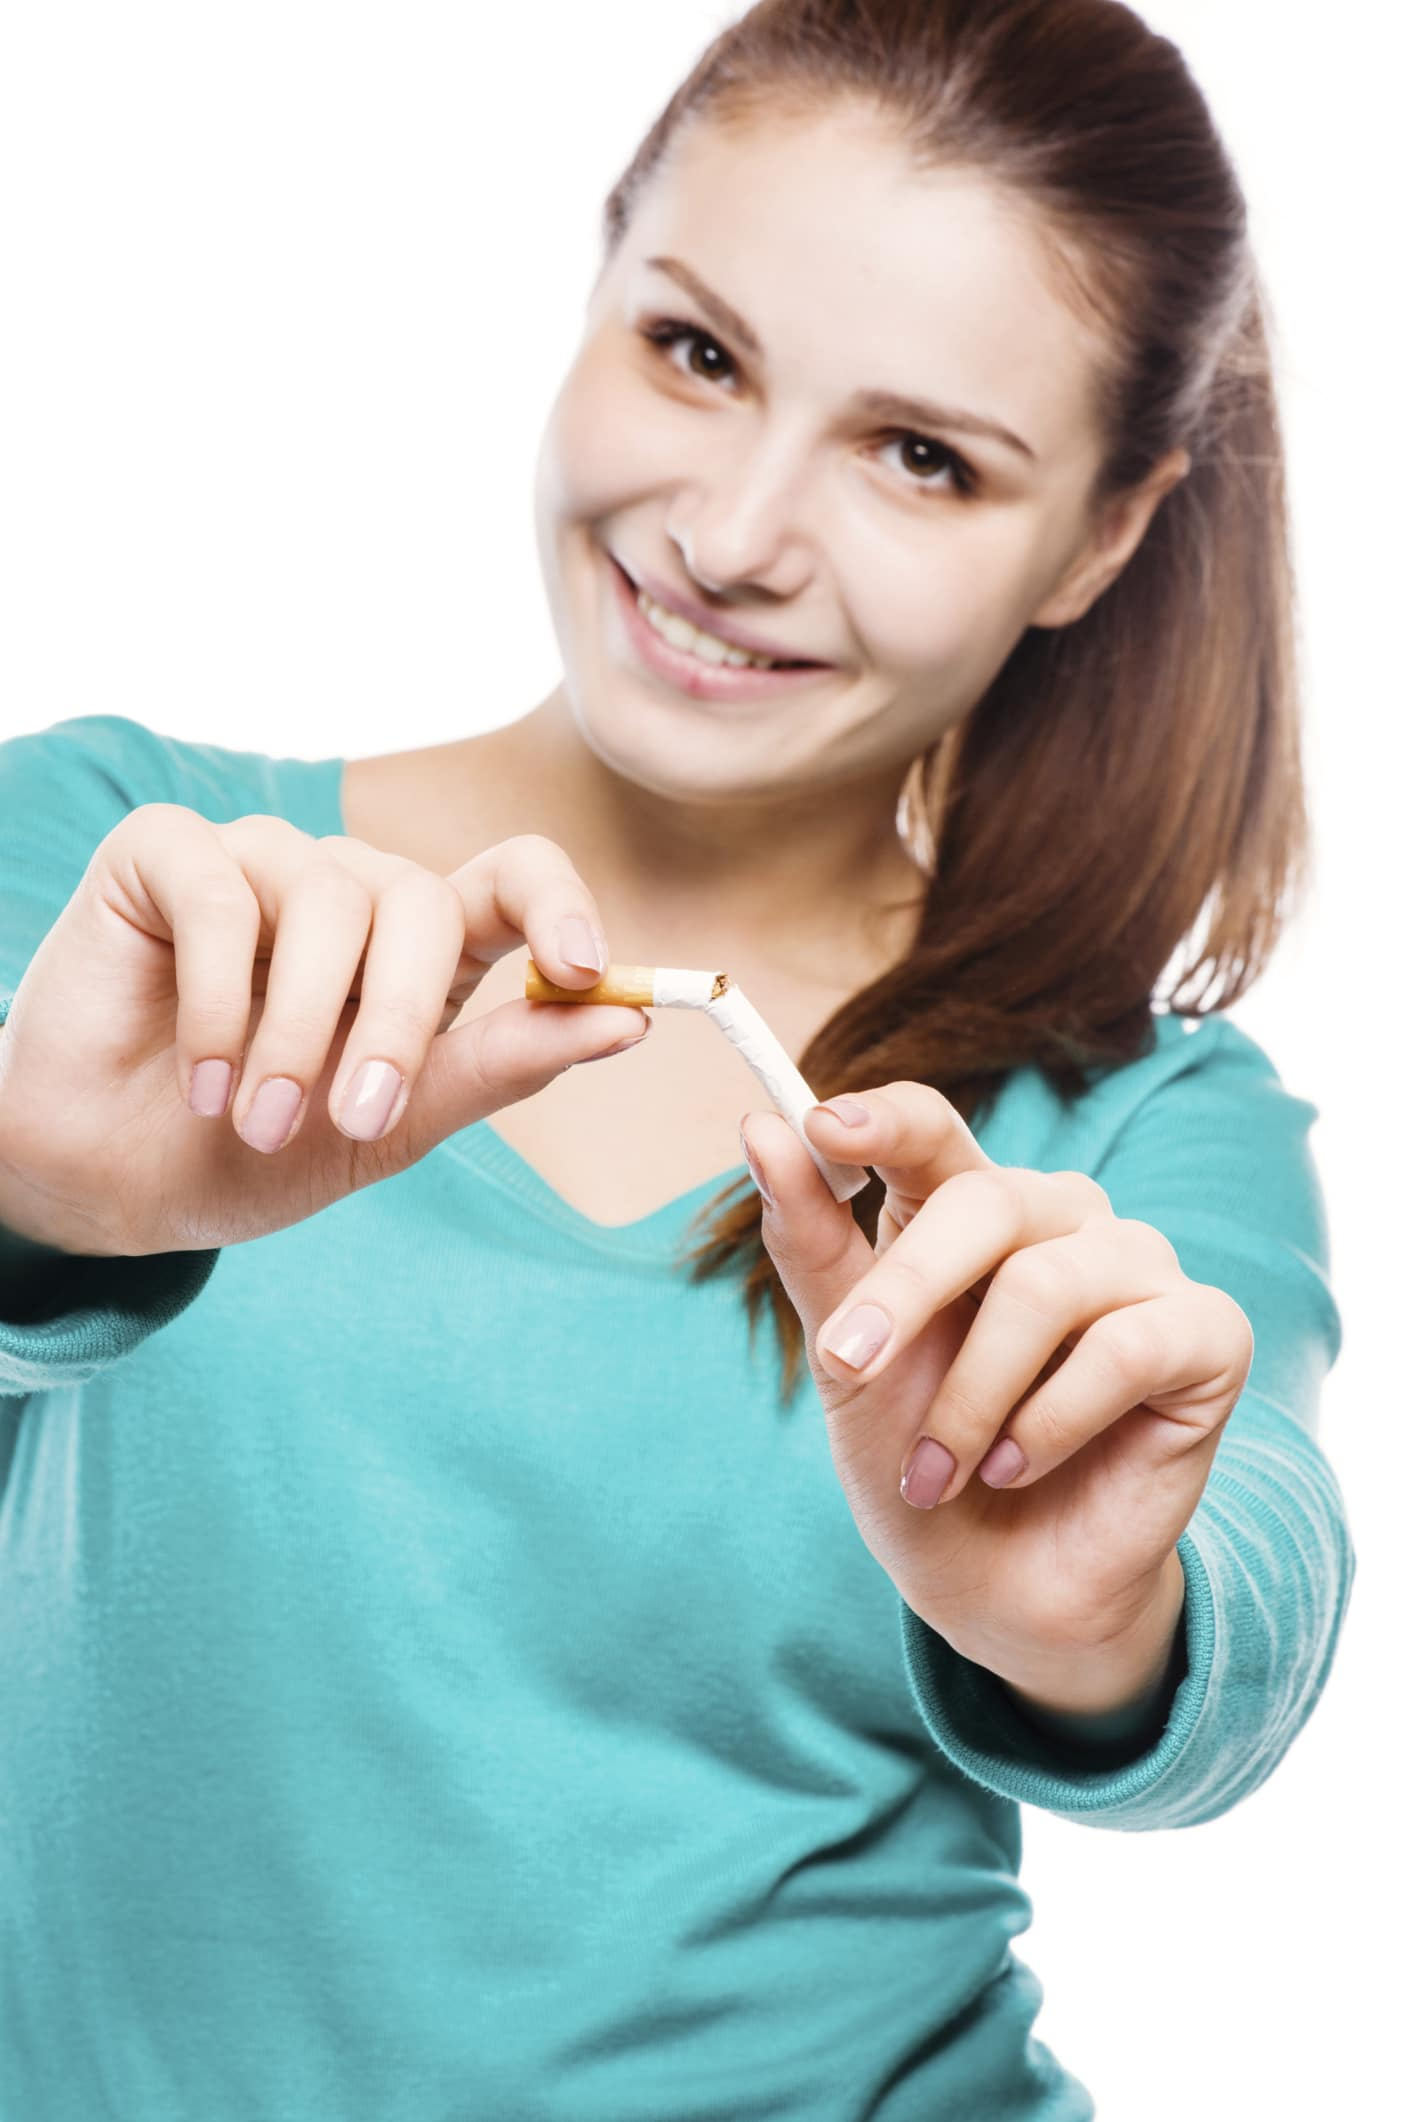 Restore your natural smile after quitting smoking